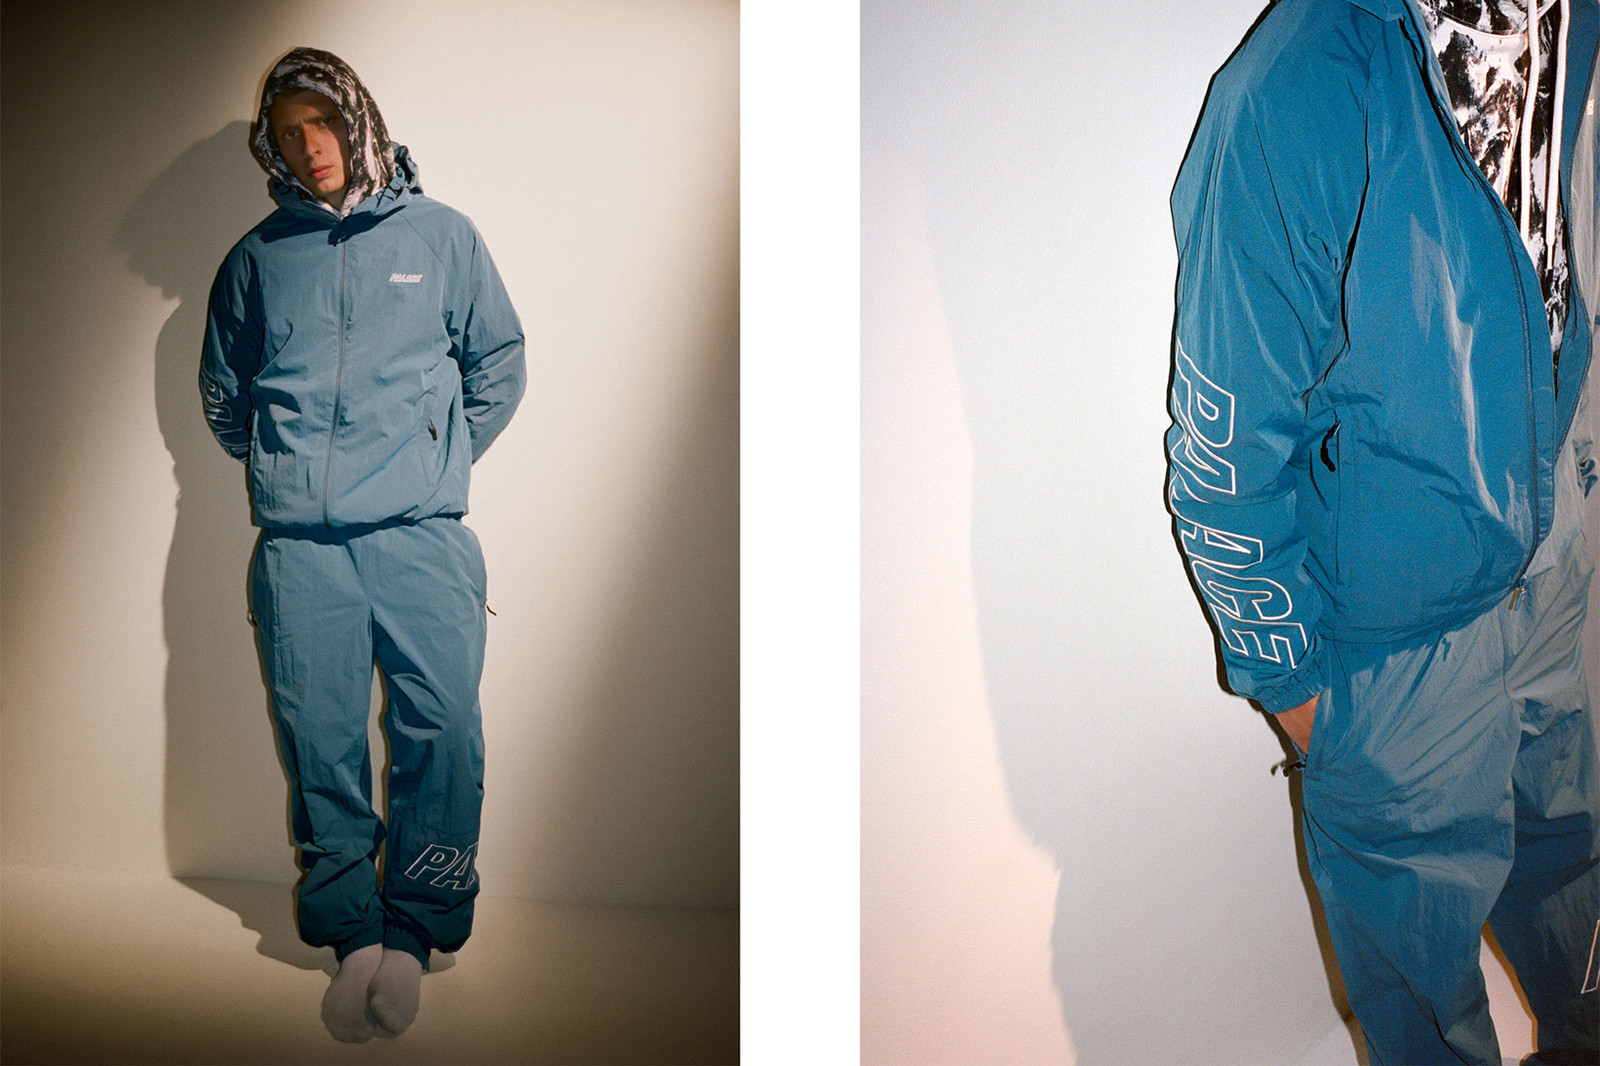 Palace Skateboards 2016 Fall/Winter Collection